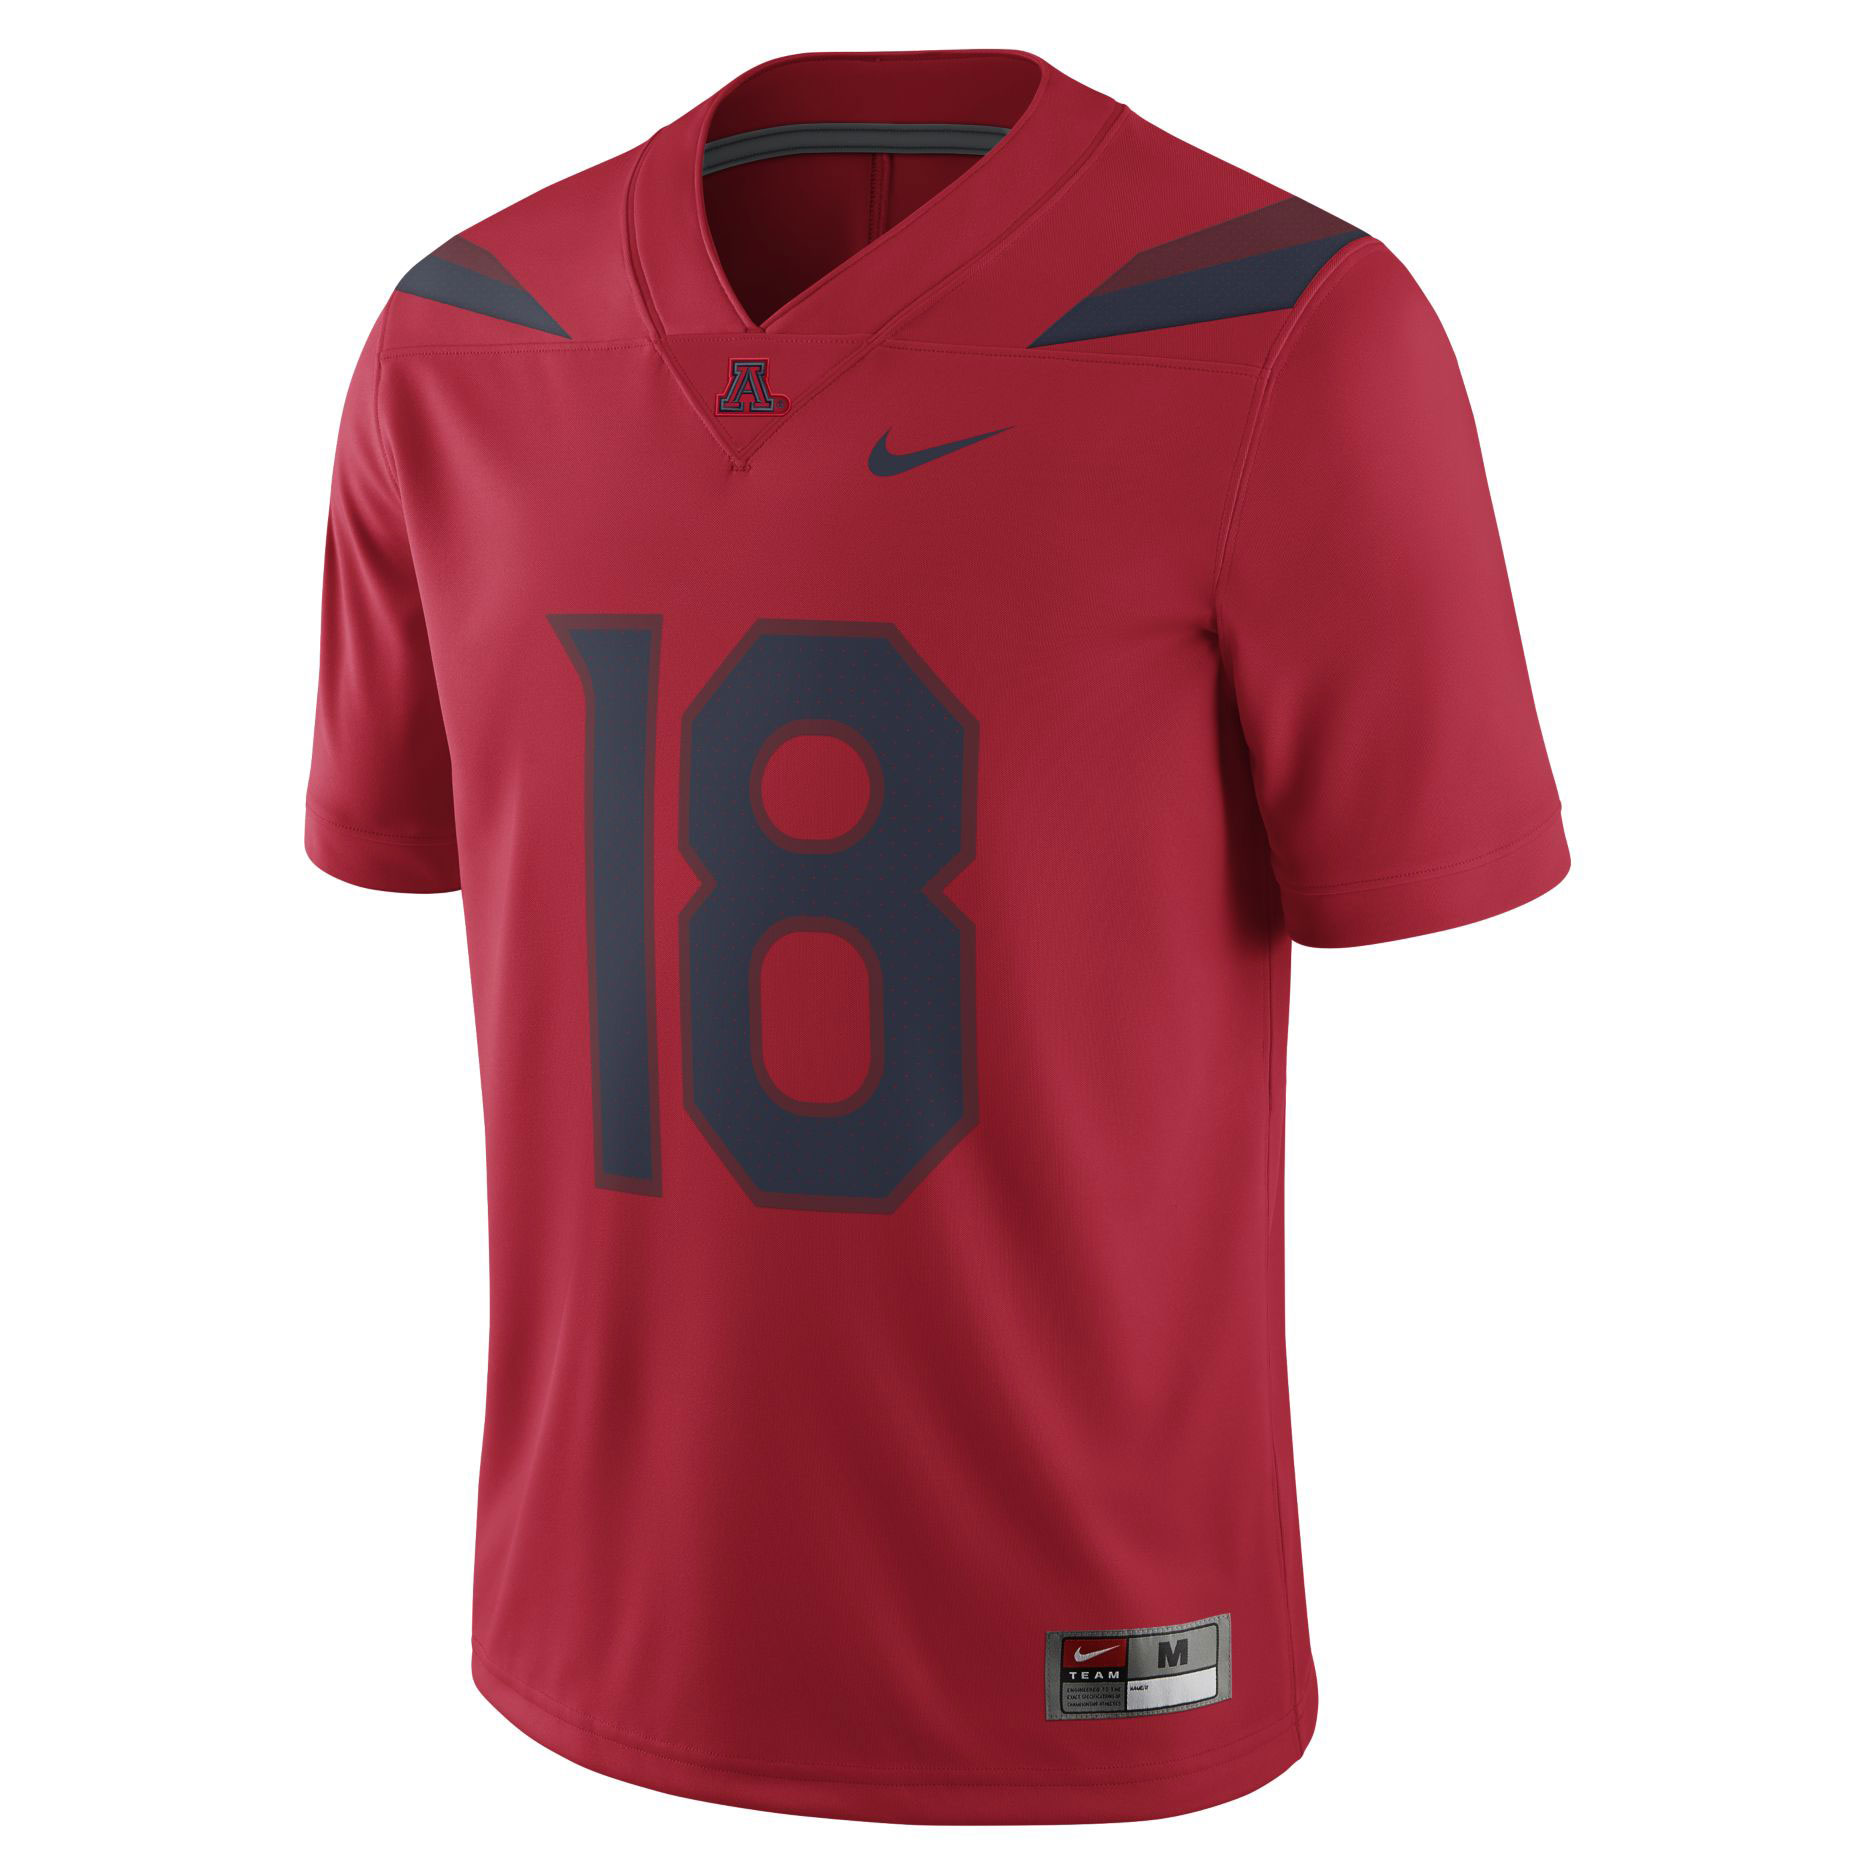 2a9efdcf85f Image For Nike  Arizona Wildcats  18 Game Football Jersey